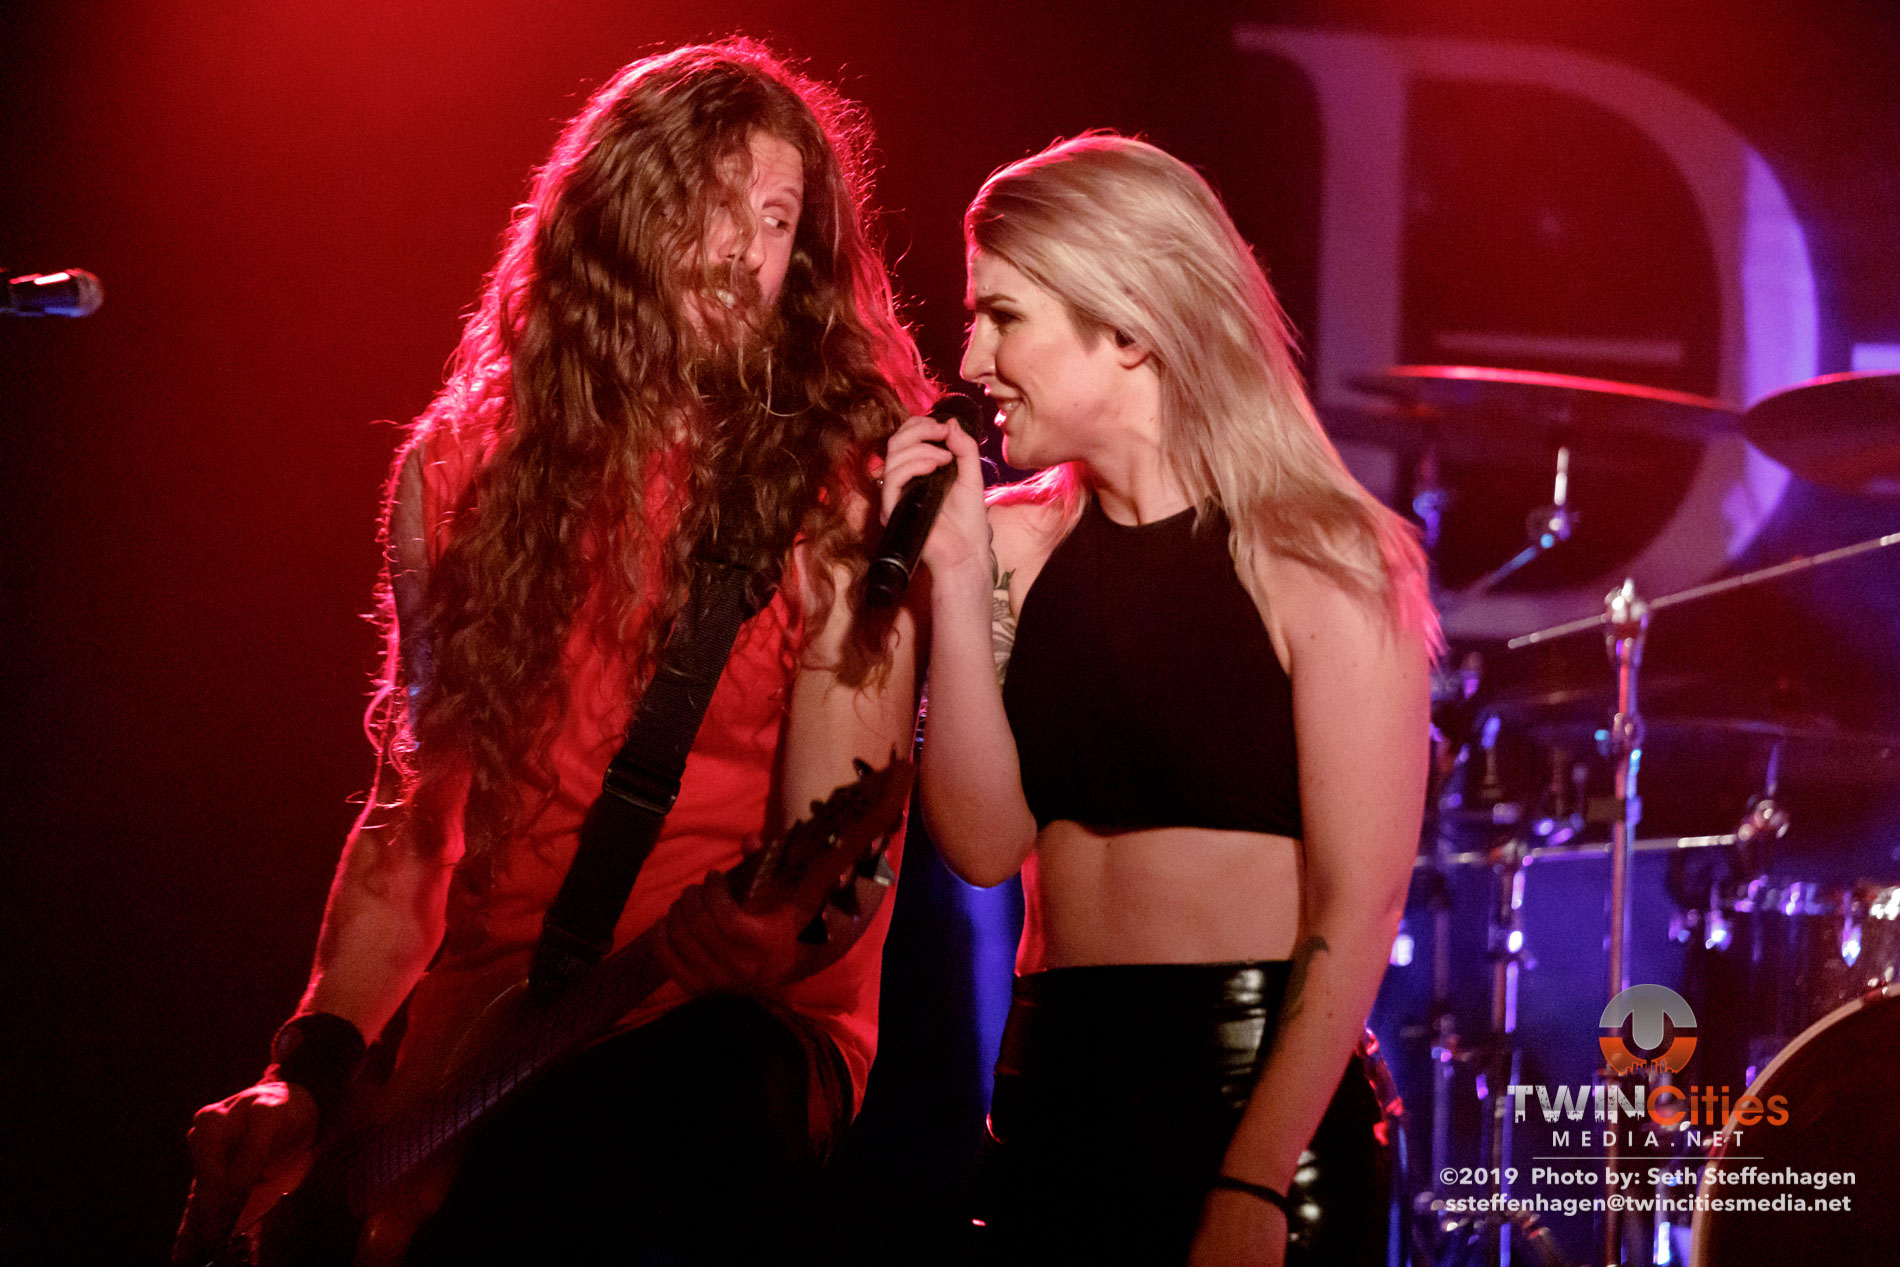 September 30, 2019 - Minneapolis, Minnesota, United States - Delain live in concert at The Cabooze along with Amorphis and Anneke Van Giersbergen as the openers.  (Photo by Seth Steffenhagen/Steffenhagen Photography)